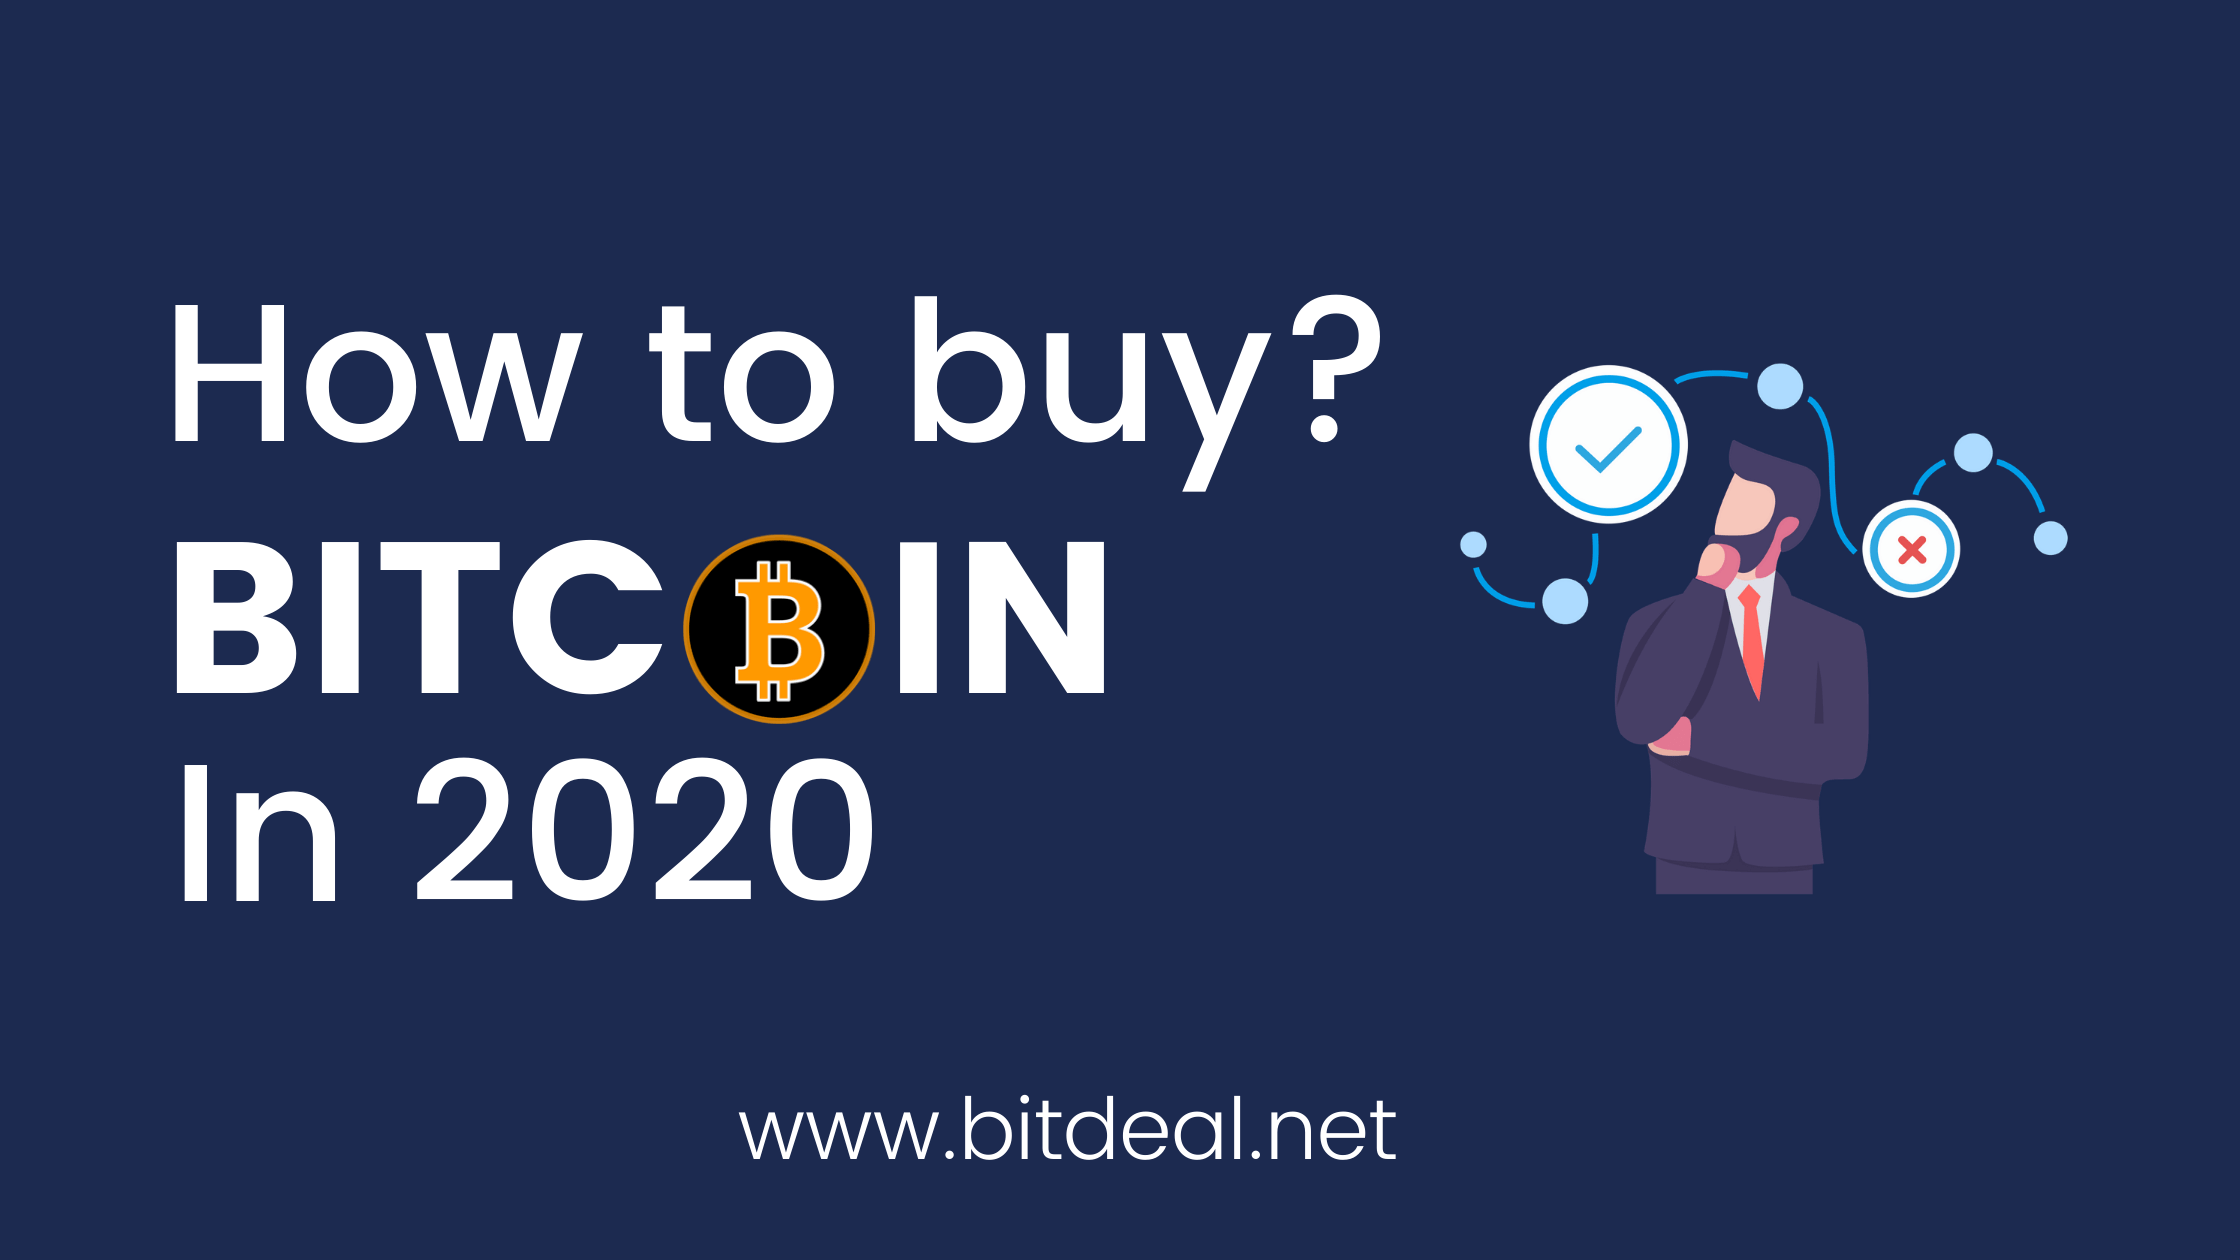 How To Legally Buy or Invest in Bitcoin - A 2020 Guide